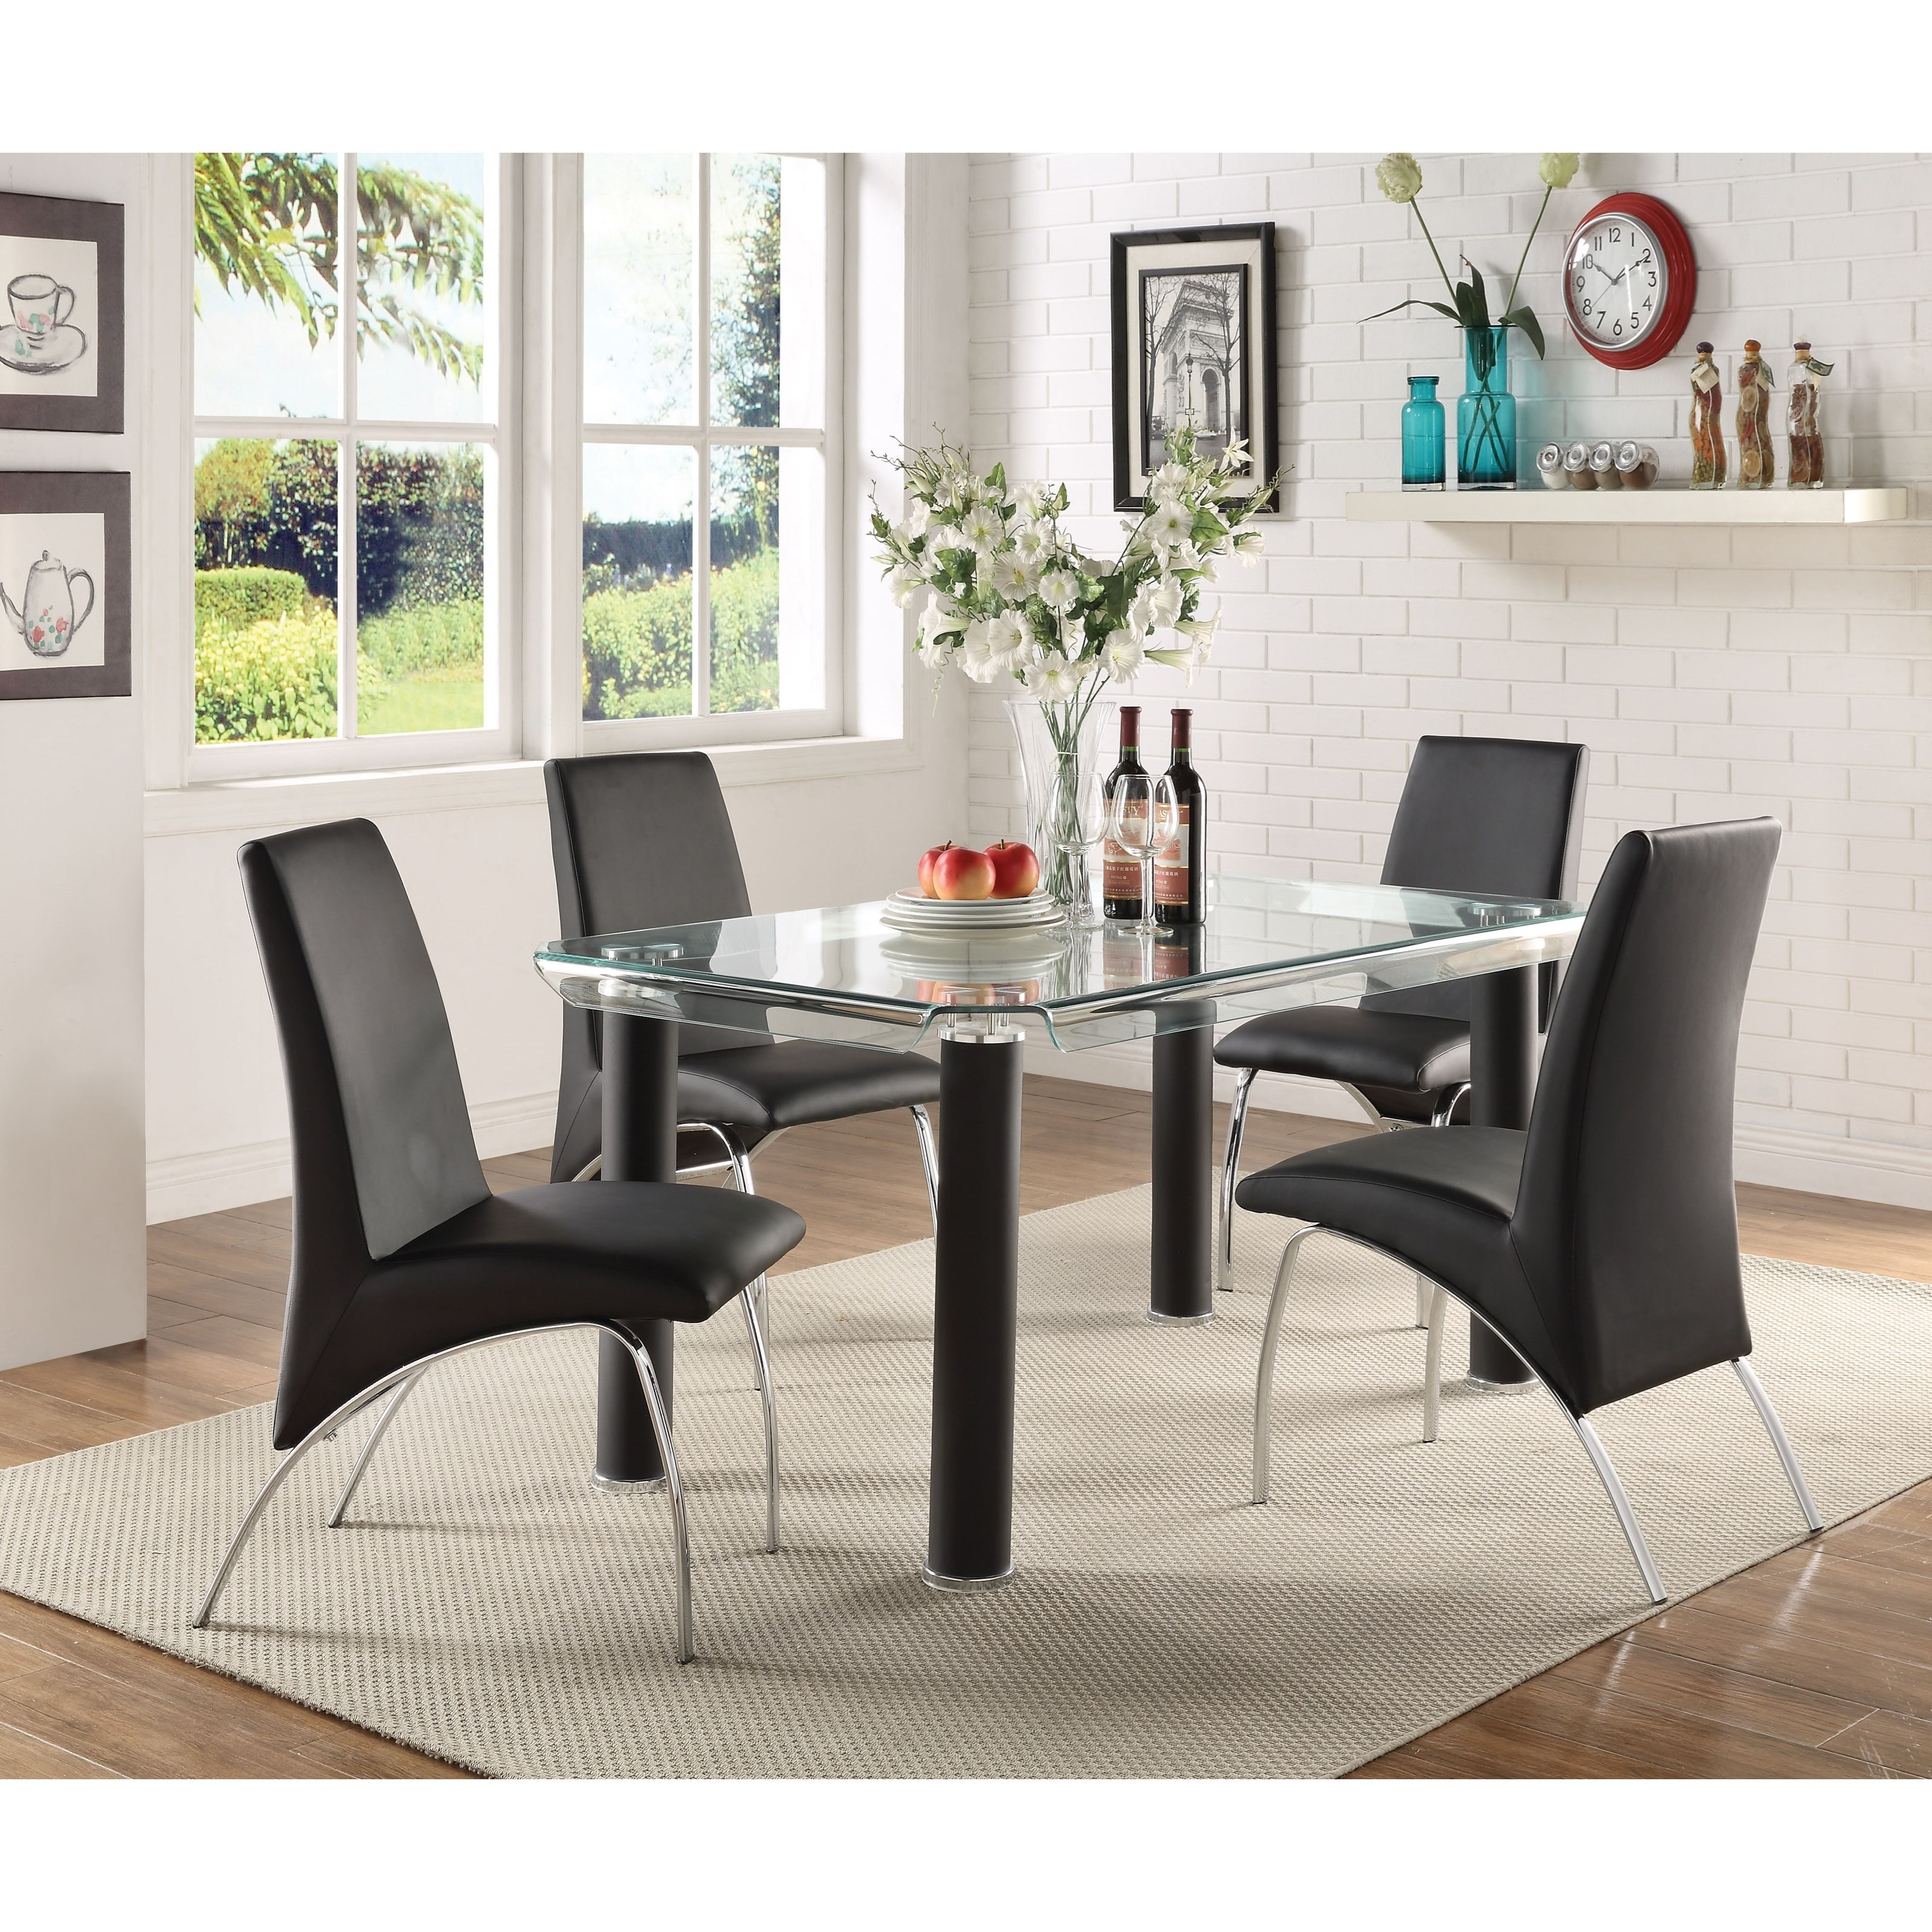 Pervis Dining Set with 4 Chairs by Acme Furniture at Carolina Direct